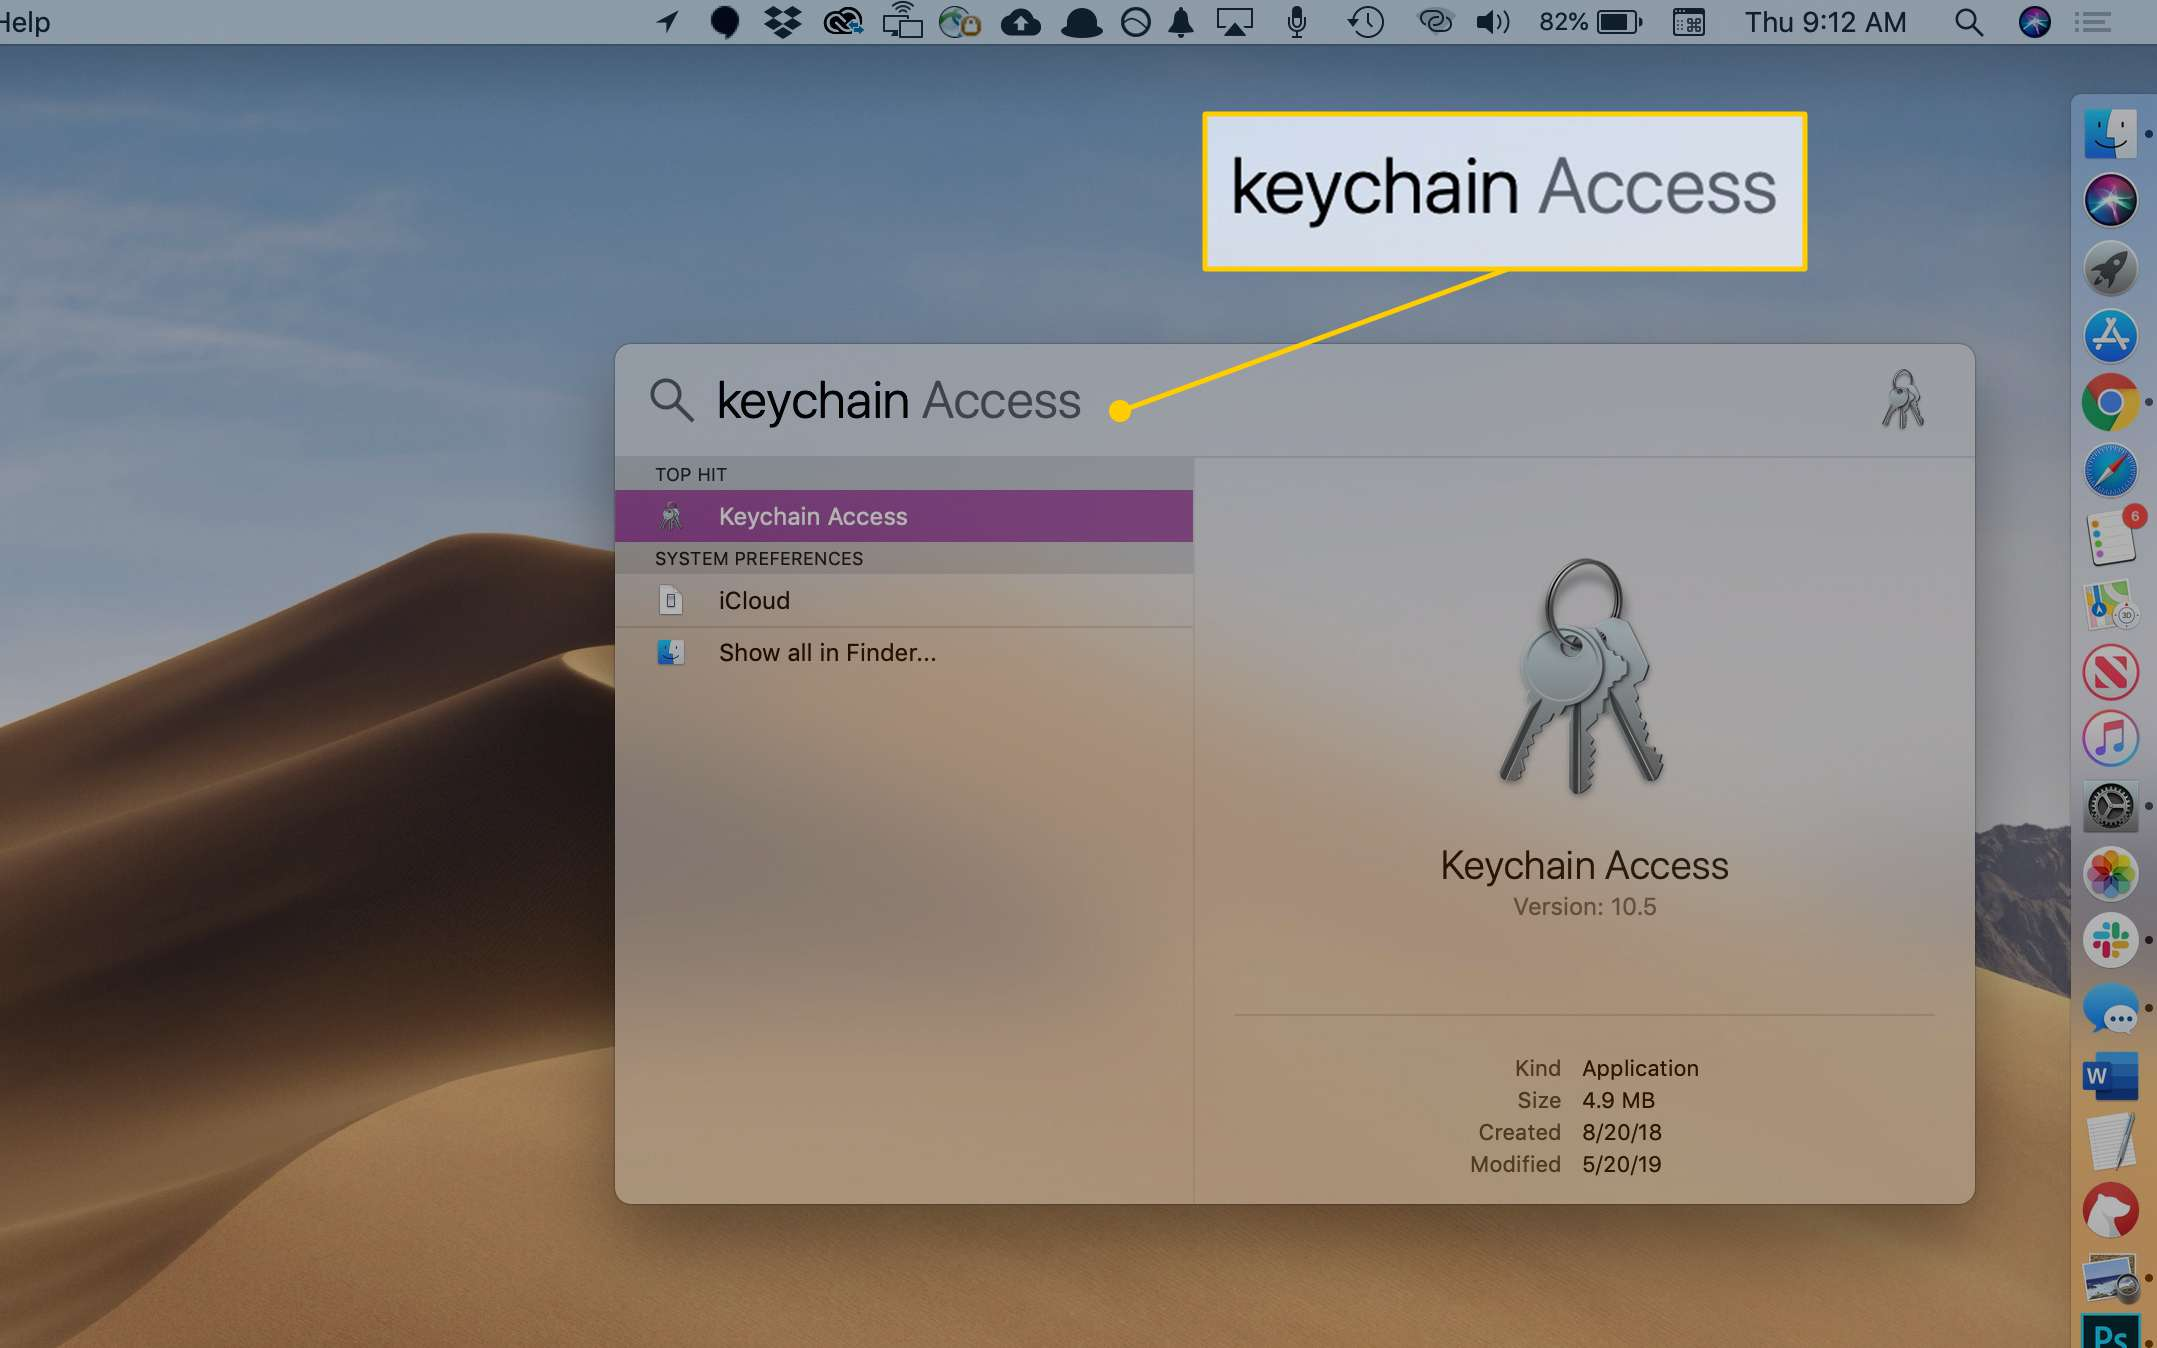 keychain Access search term in macOS